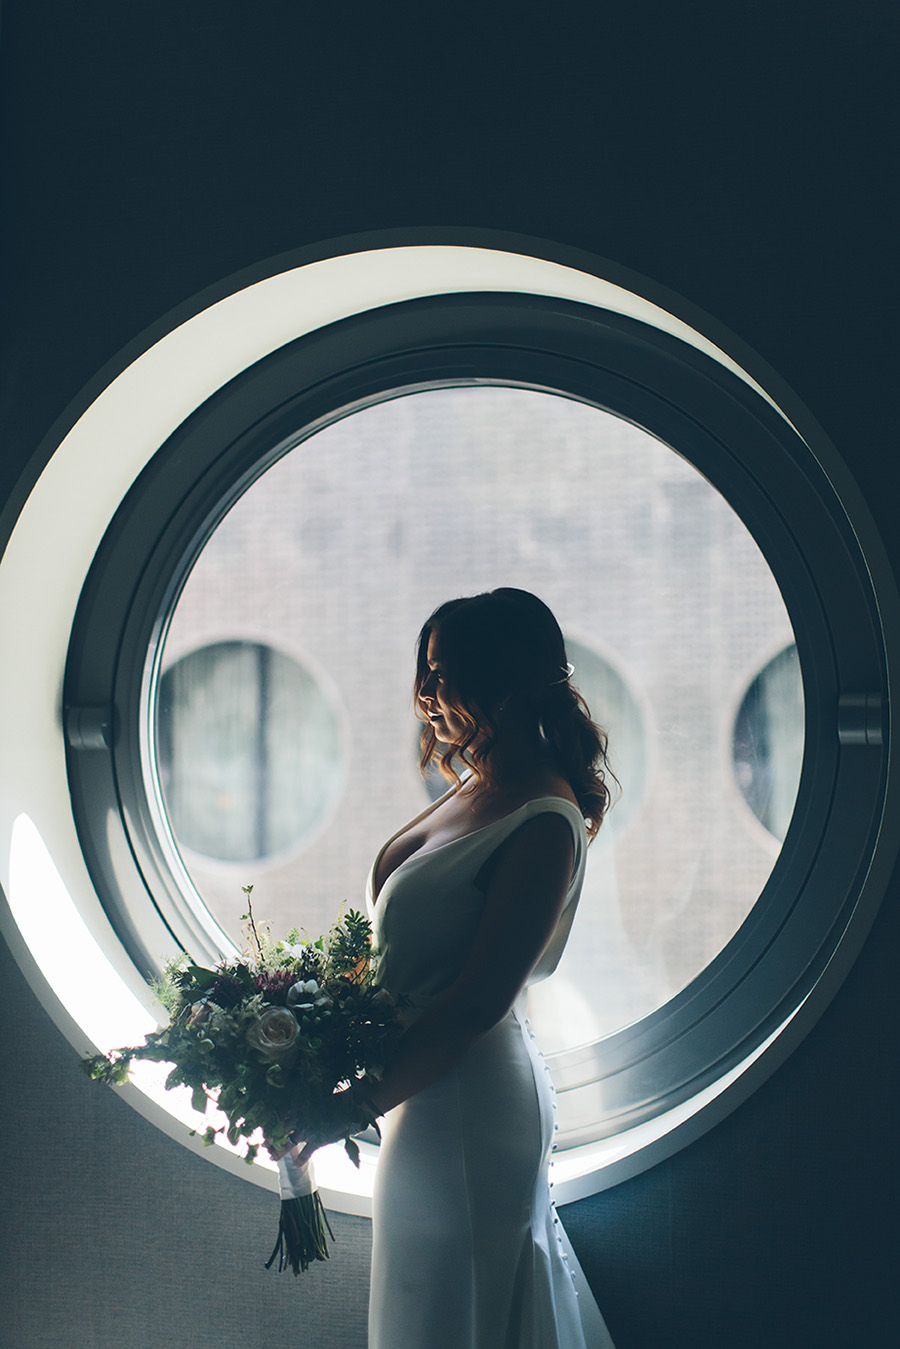 NEW-YORK-CITY-WEDDING-PHOTOGRAPHER-CURRENT-CHELSEAPIERS-THE-HIGHLINE-DREAM-HOTELS-CHELSEA-MANHATTAN-BROOKLYN-WEDDING-PHOTOGRAPHY-0027.jpg